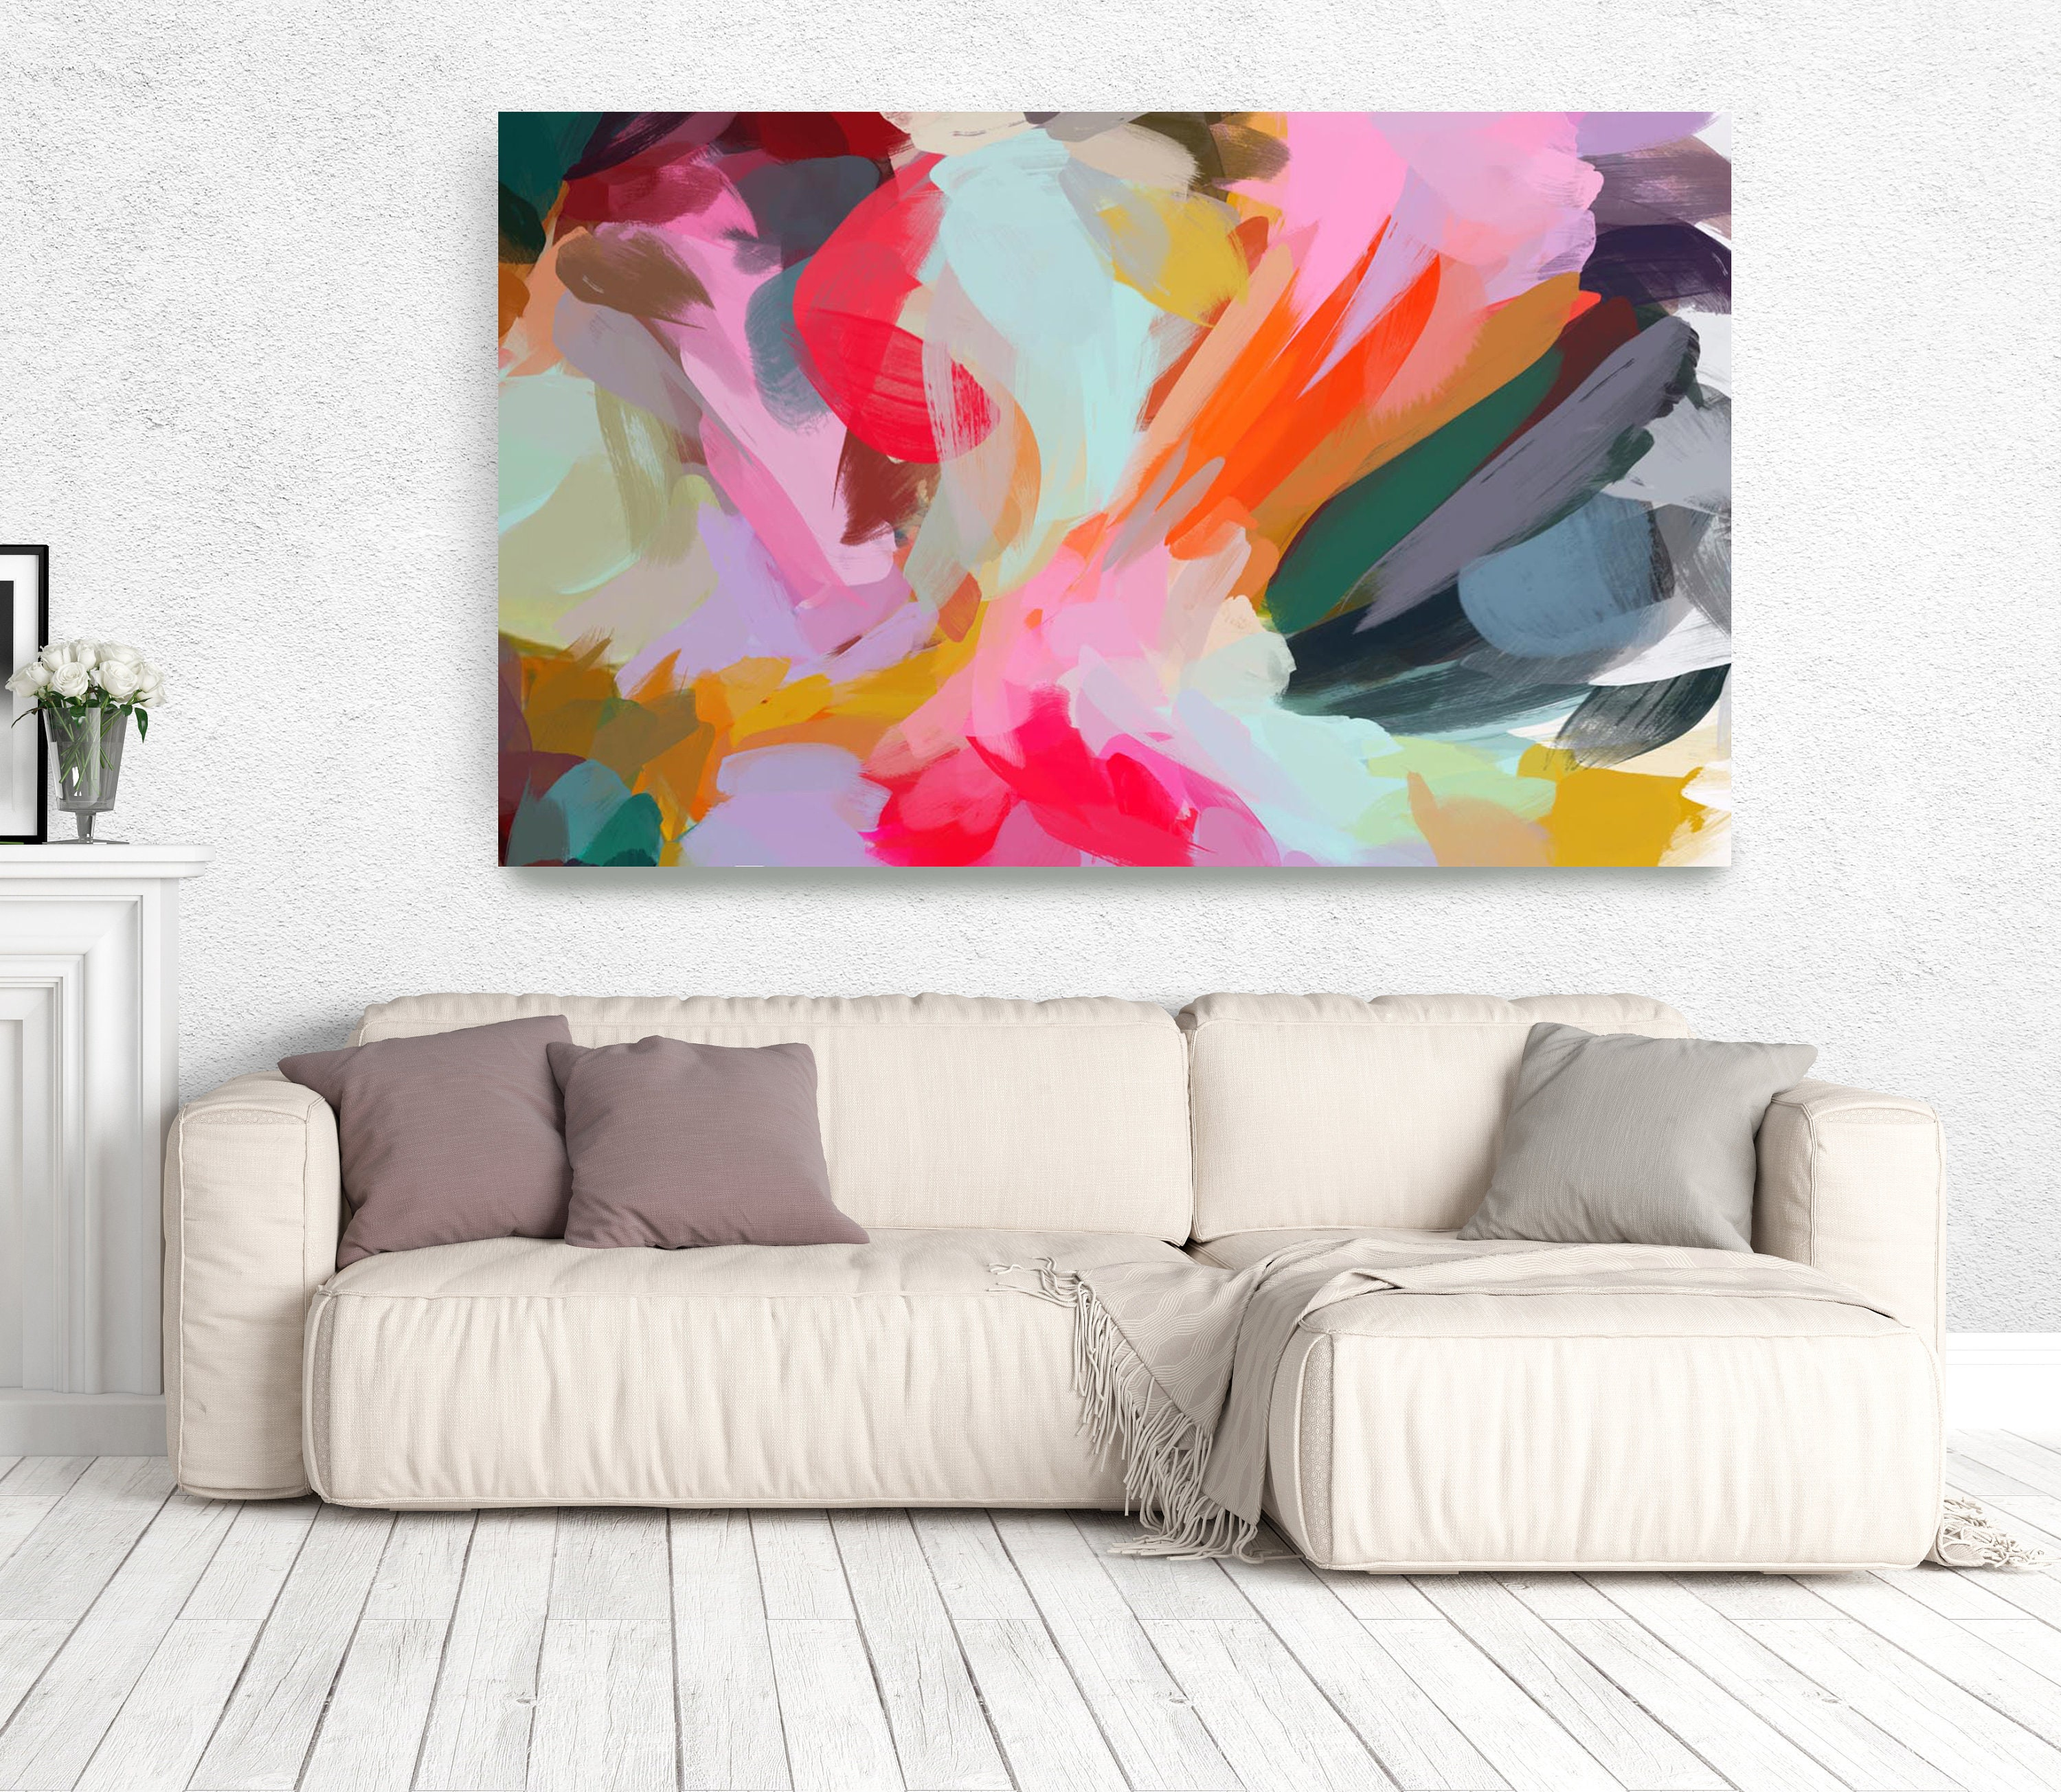 The Color Movement 9 Abstract Art Canvas Print Living Room